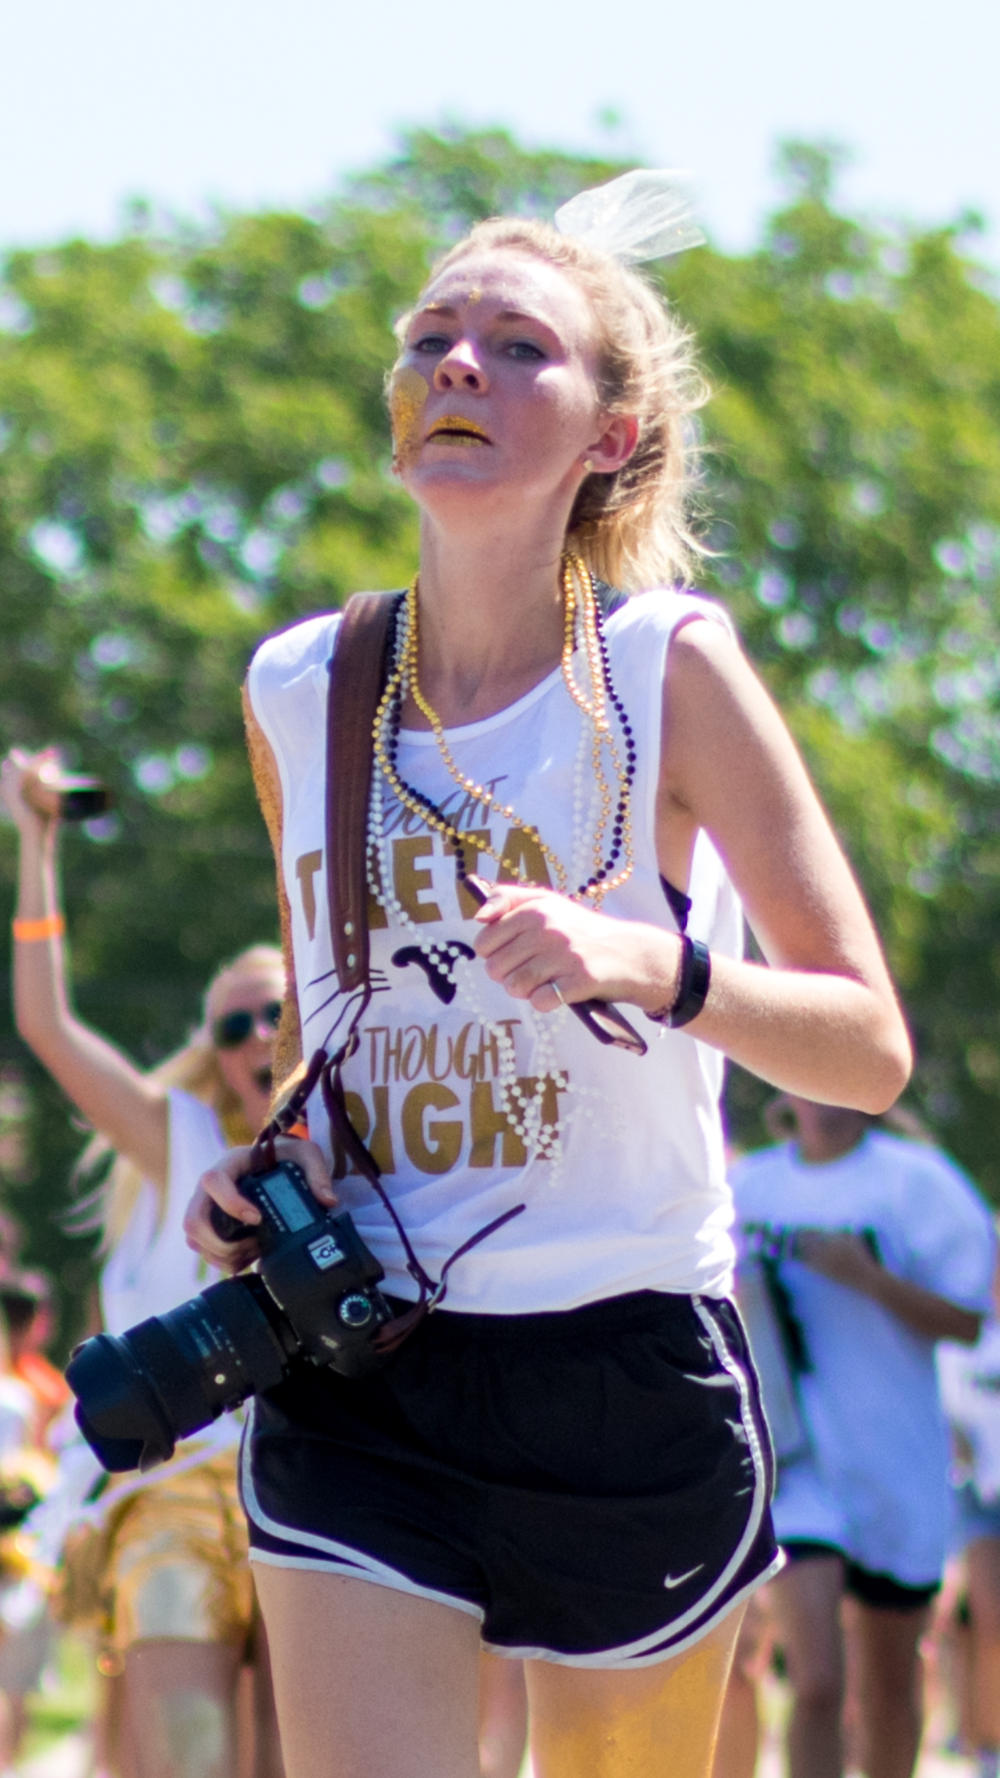 My embarrassing photo from bid day (with my camera in hand, of course).